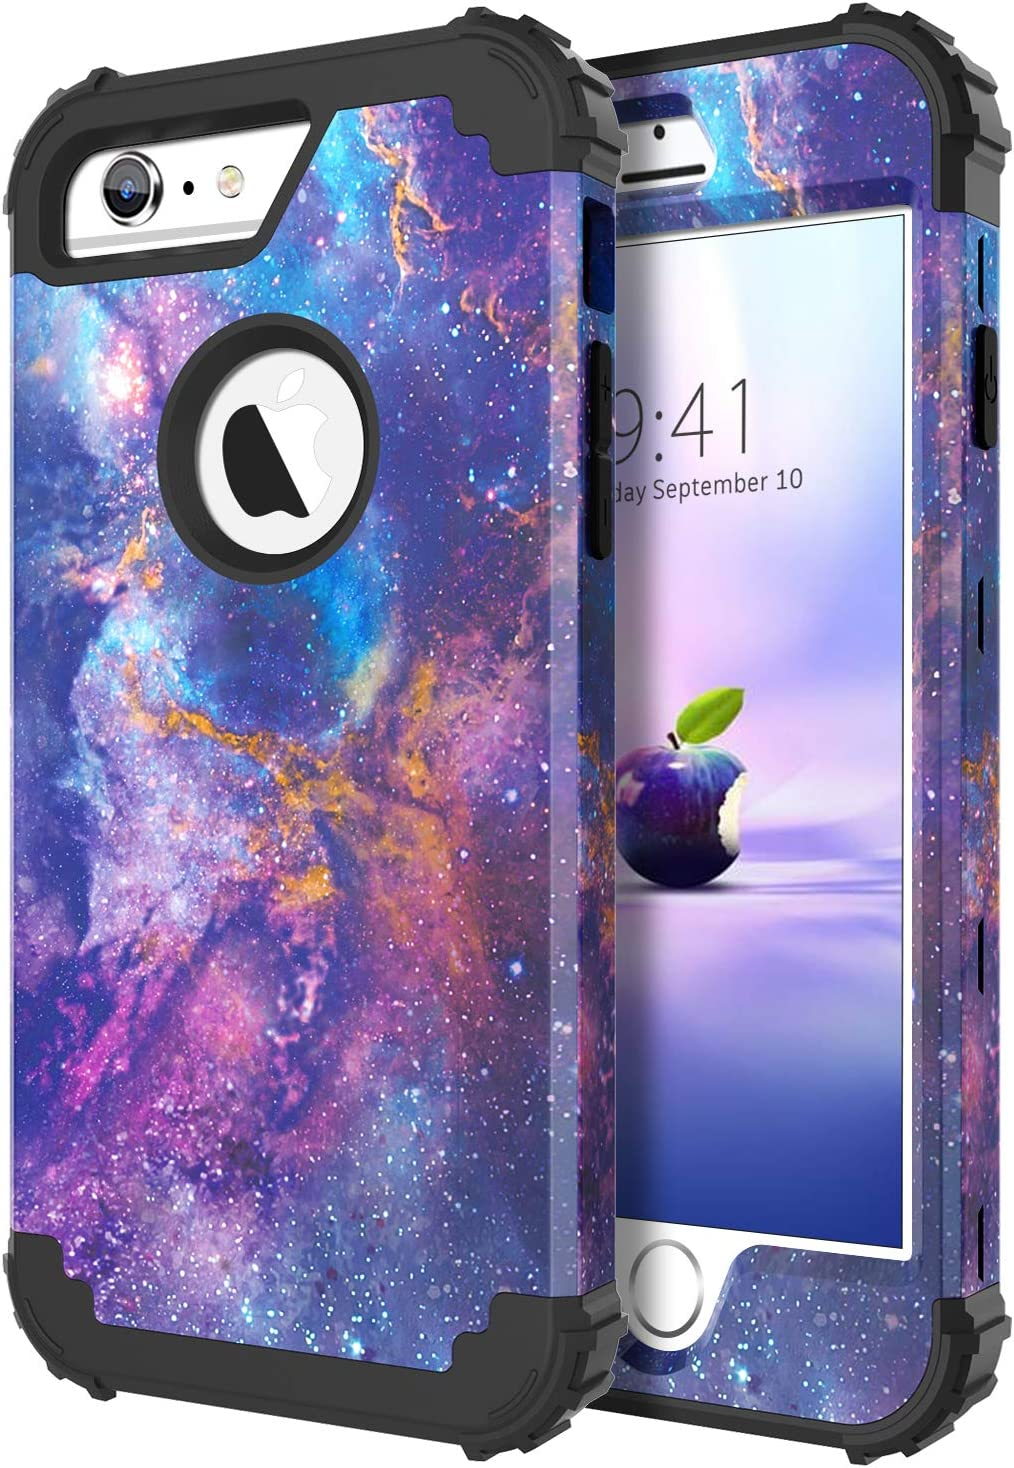 iPhone 6 Plus Case,iPhone 6S Plus Case,DUEDUE Nebula Galaxy Design Rugged Heavy Duty Shockproof 3 in 1 Hybrid Hard PC Covers Soft Silicone Bumper Full Protective Case for iPhone 6 Plus/6S Plus,Purple